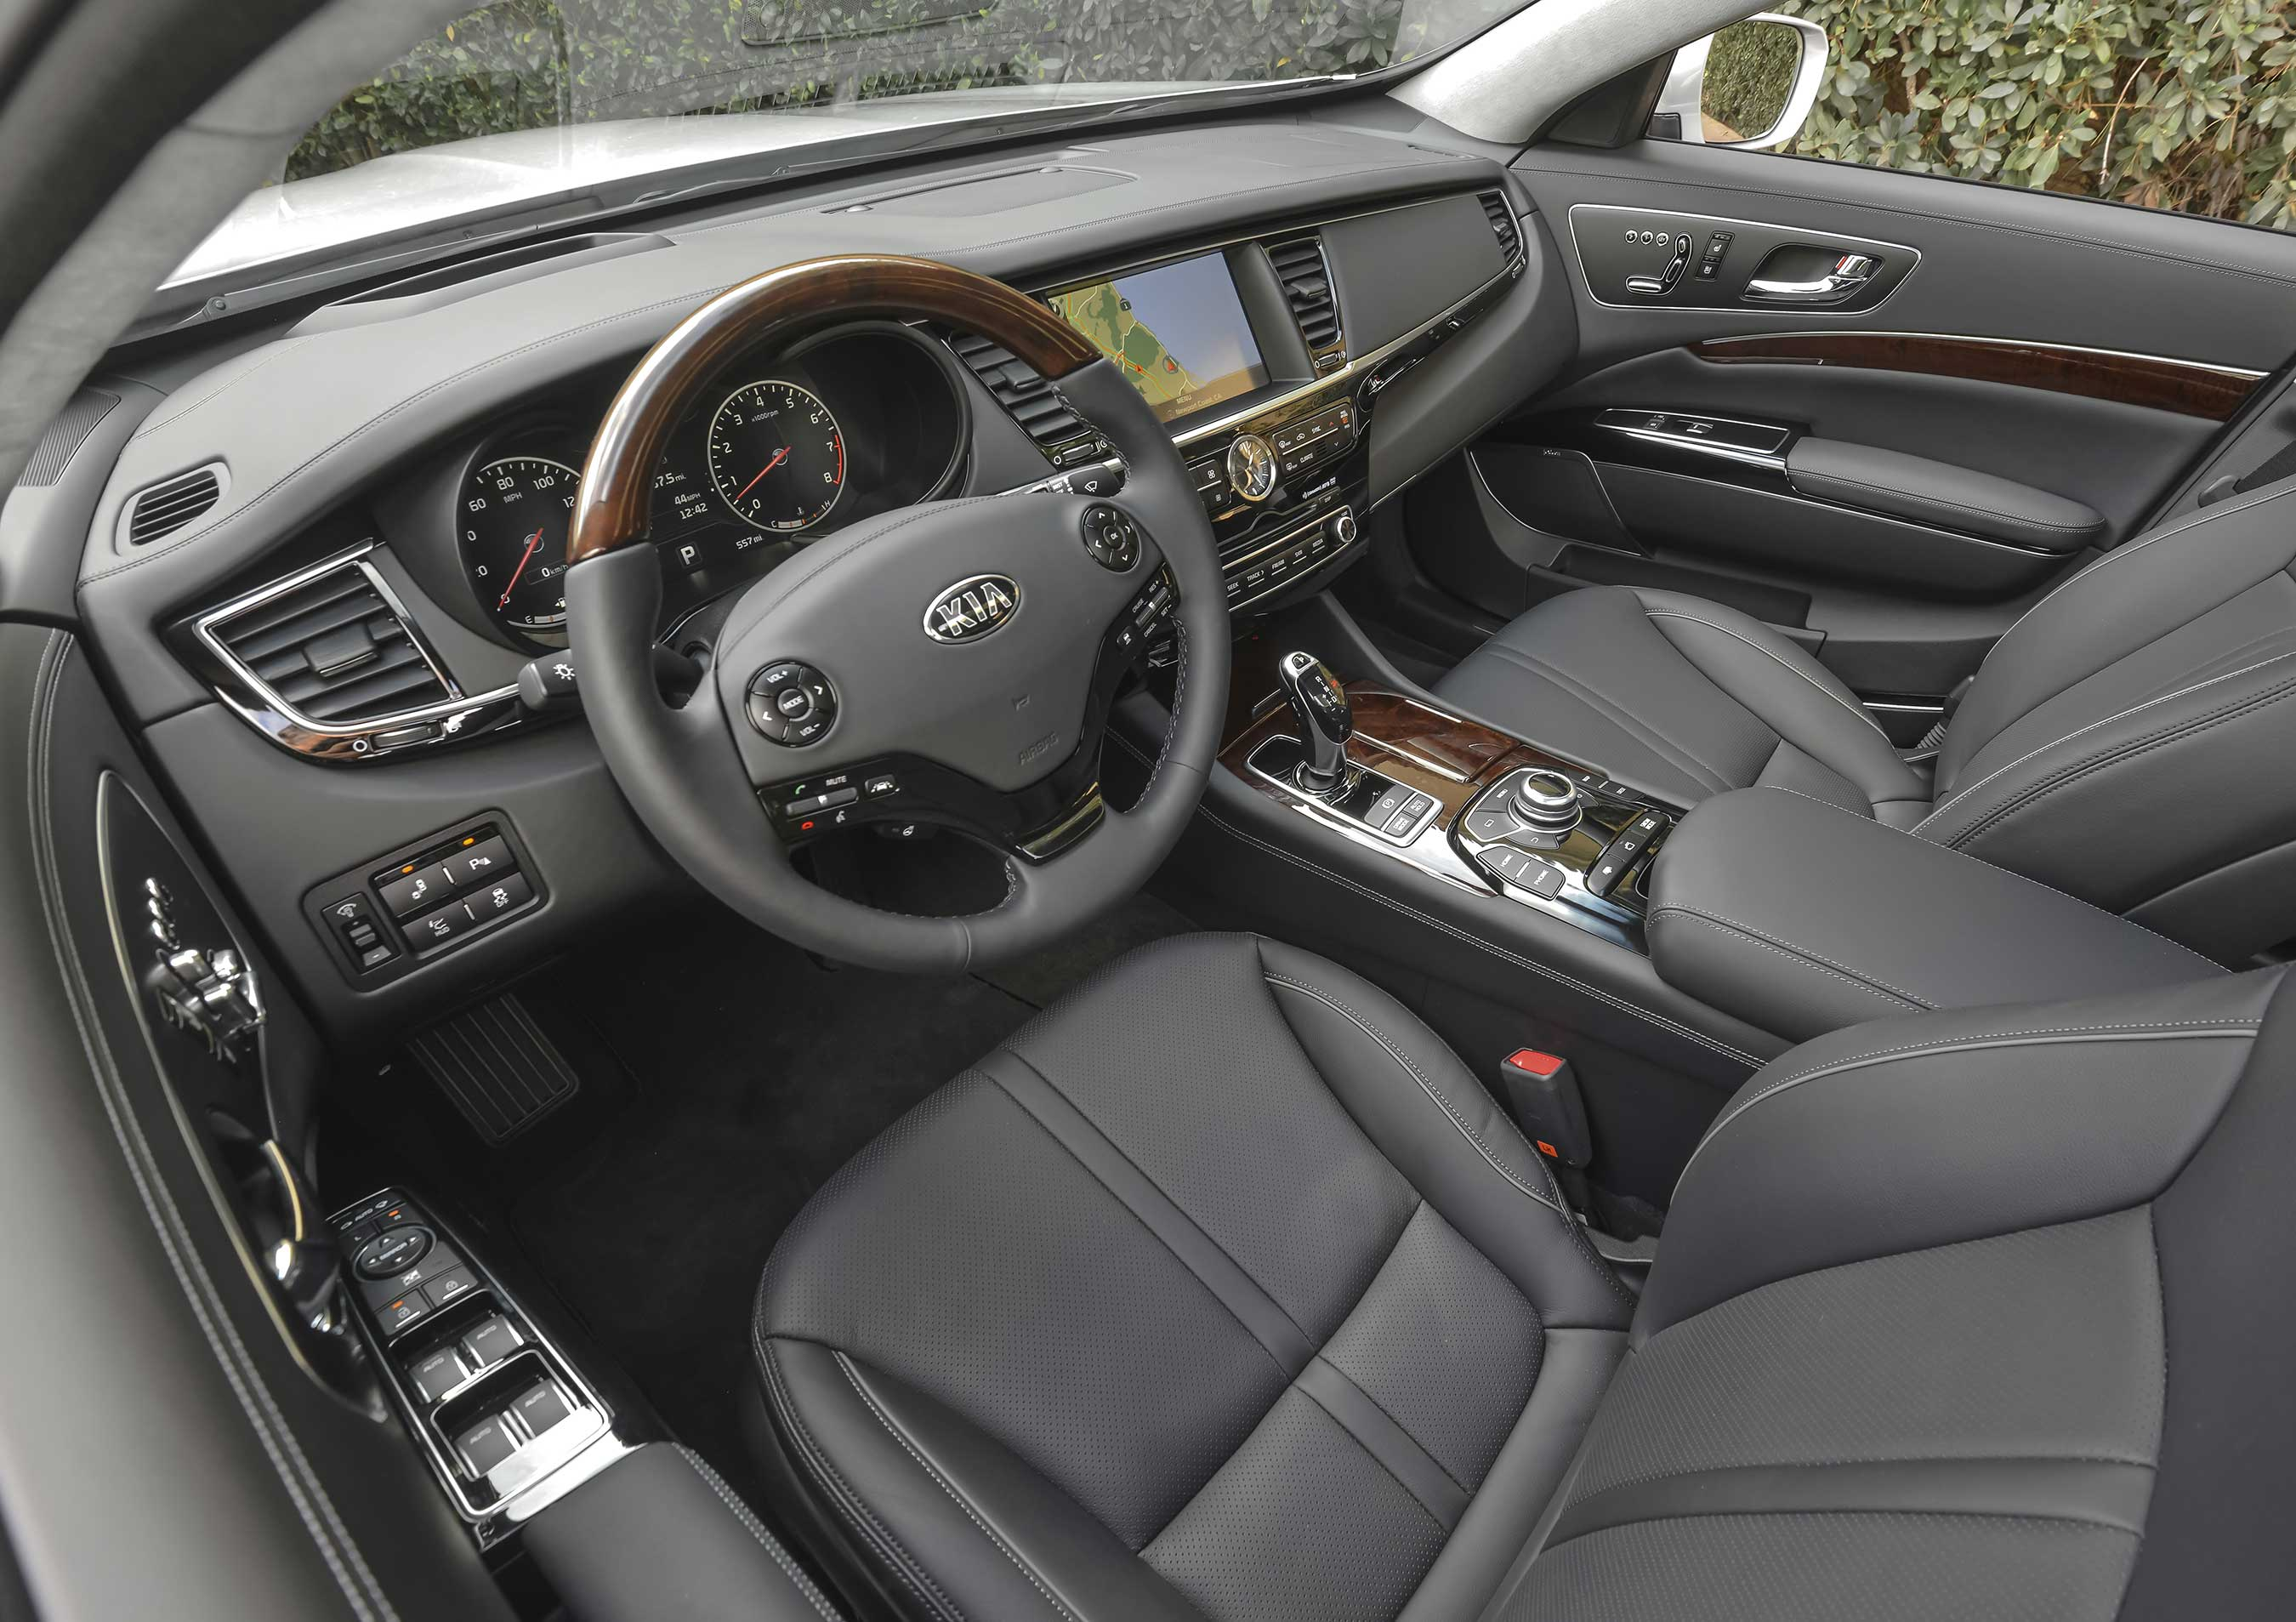 lebron james tells the truth about driving his kia k900 luxury sedan. Black Bedroom Furniture Sets. Home Design Ideas